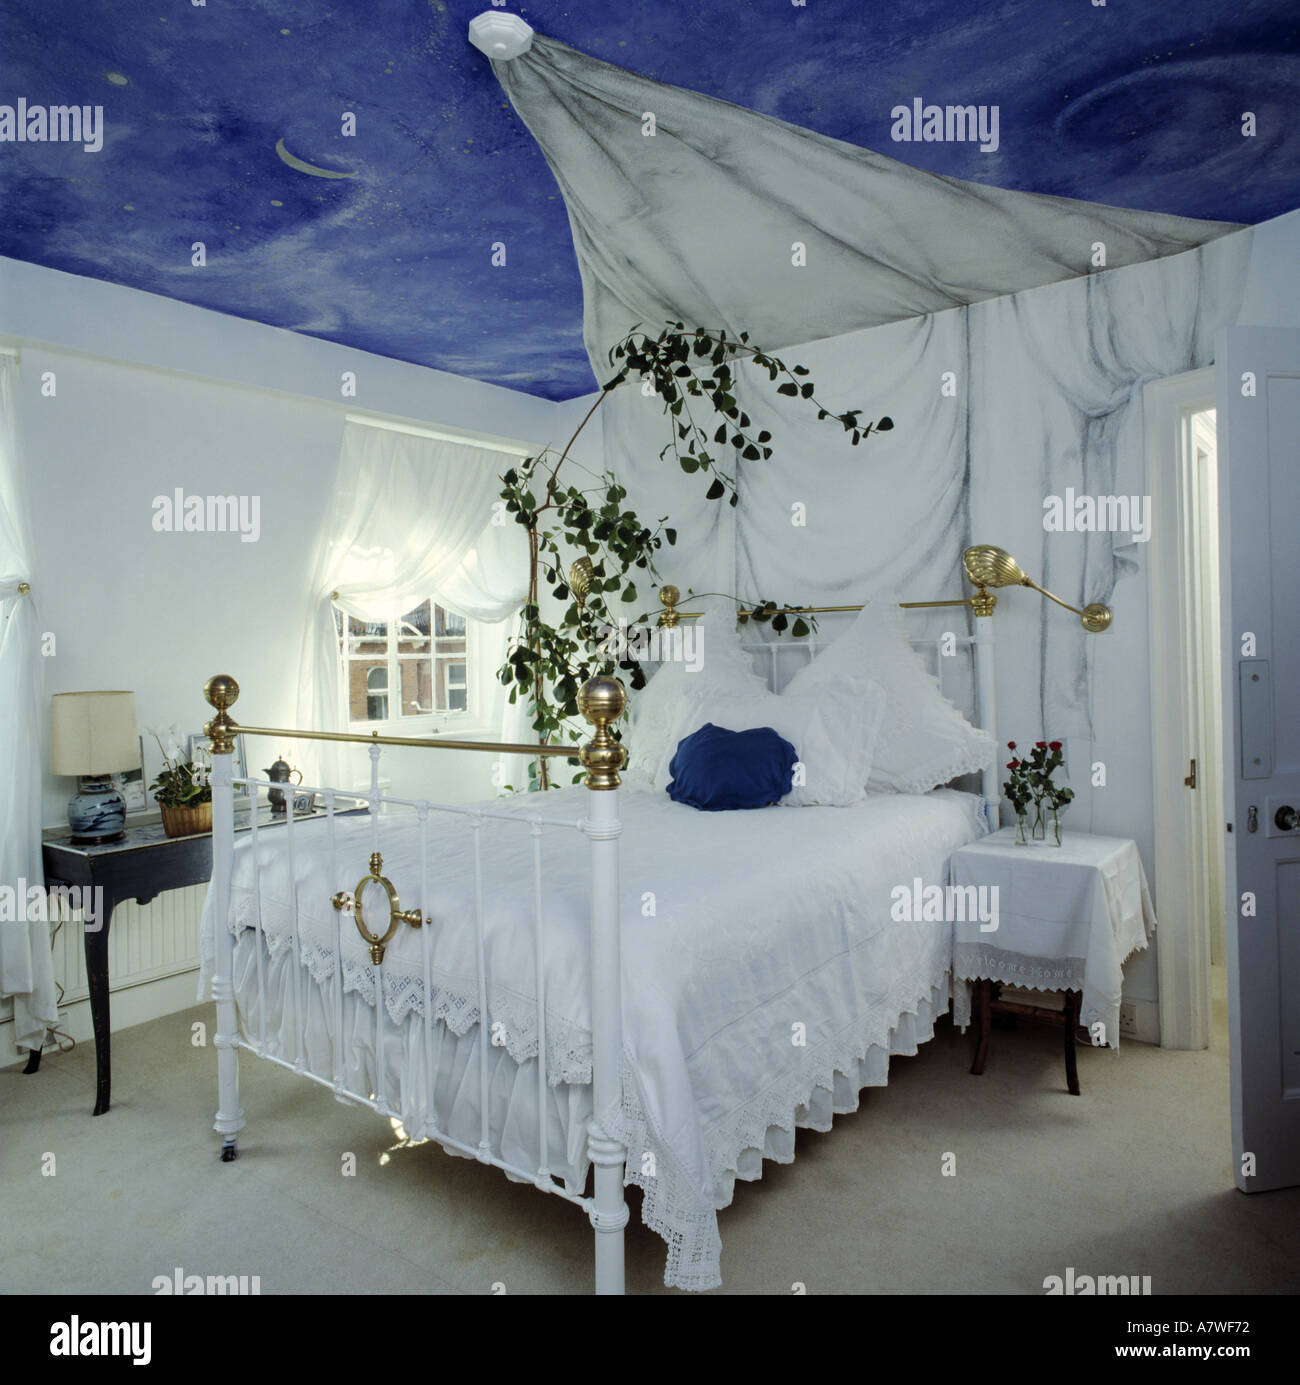 Bedroom ceiling drapes - Blue Night Sky Mural Painted On Ceiling Above Bed With False Drapes Painted On Wall Above